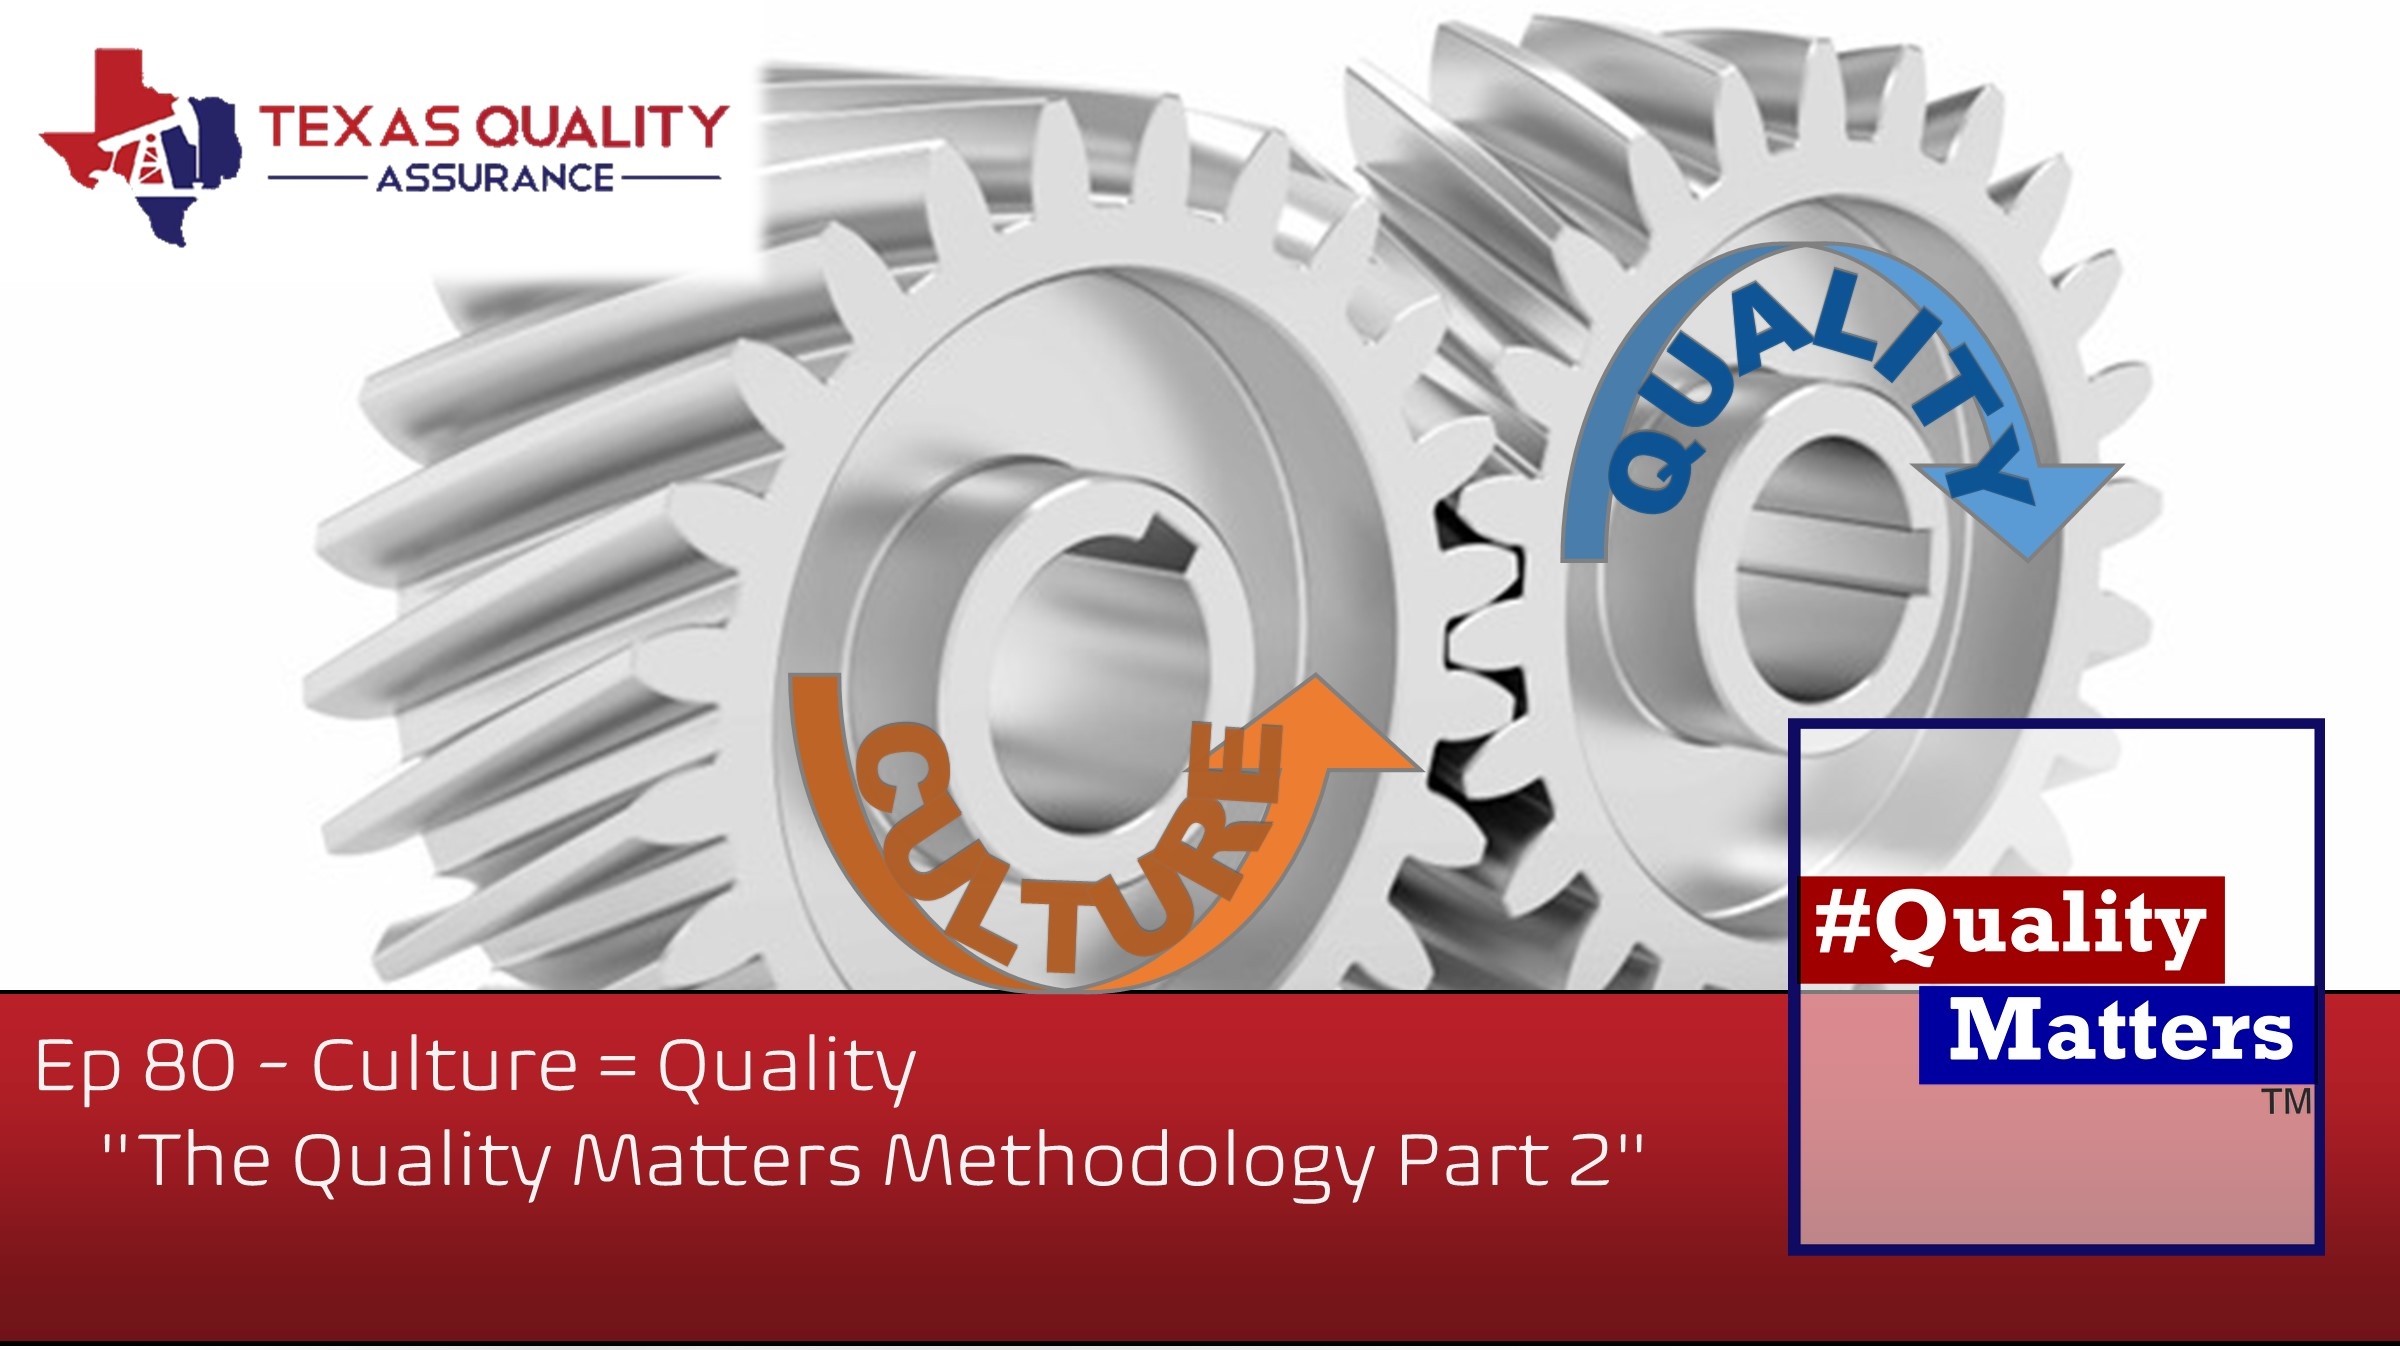 2.2.1 Quality An organization focused on quality promotes a culture that results in the behaviour, attitudes, activities and processes that deliver value through fulfilling the needs and expectations of customers and other relevant interested parties. The quality of an organization's products and services is determined by the ability to satisfy customers and the intended and unintended impact on relevant interested parties. The quality of products and services includes not only their intended function and performance, but also their perceived value and benefit to the customer.